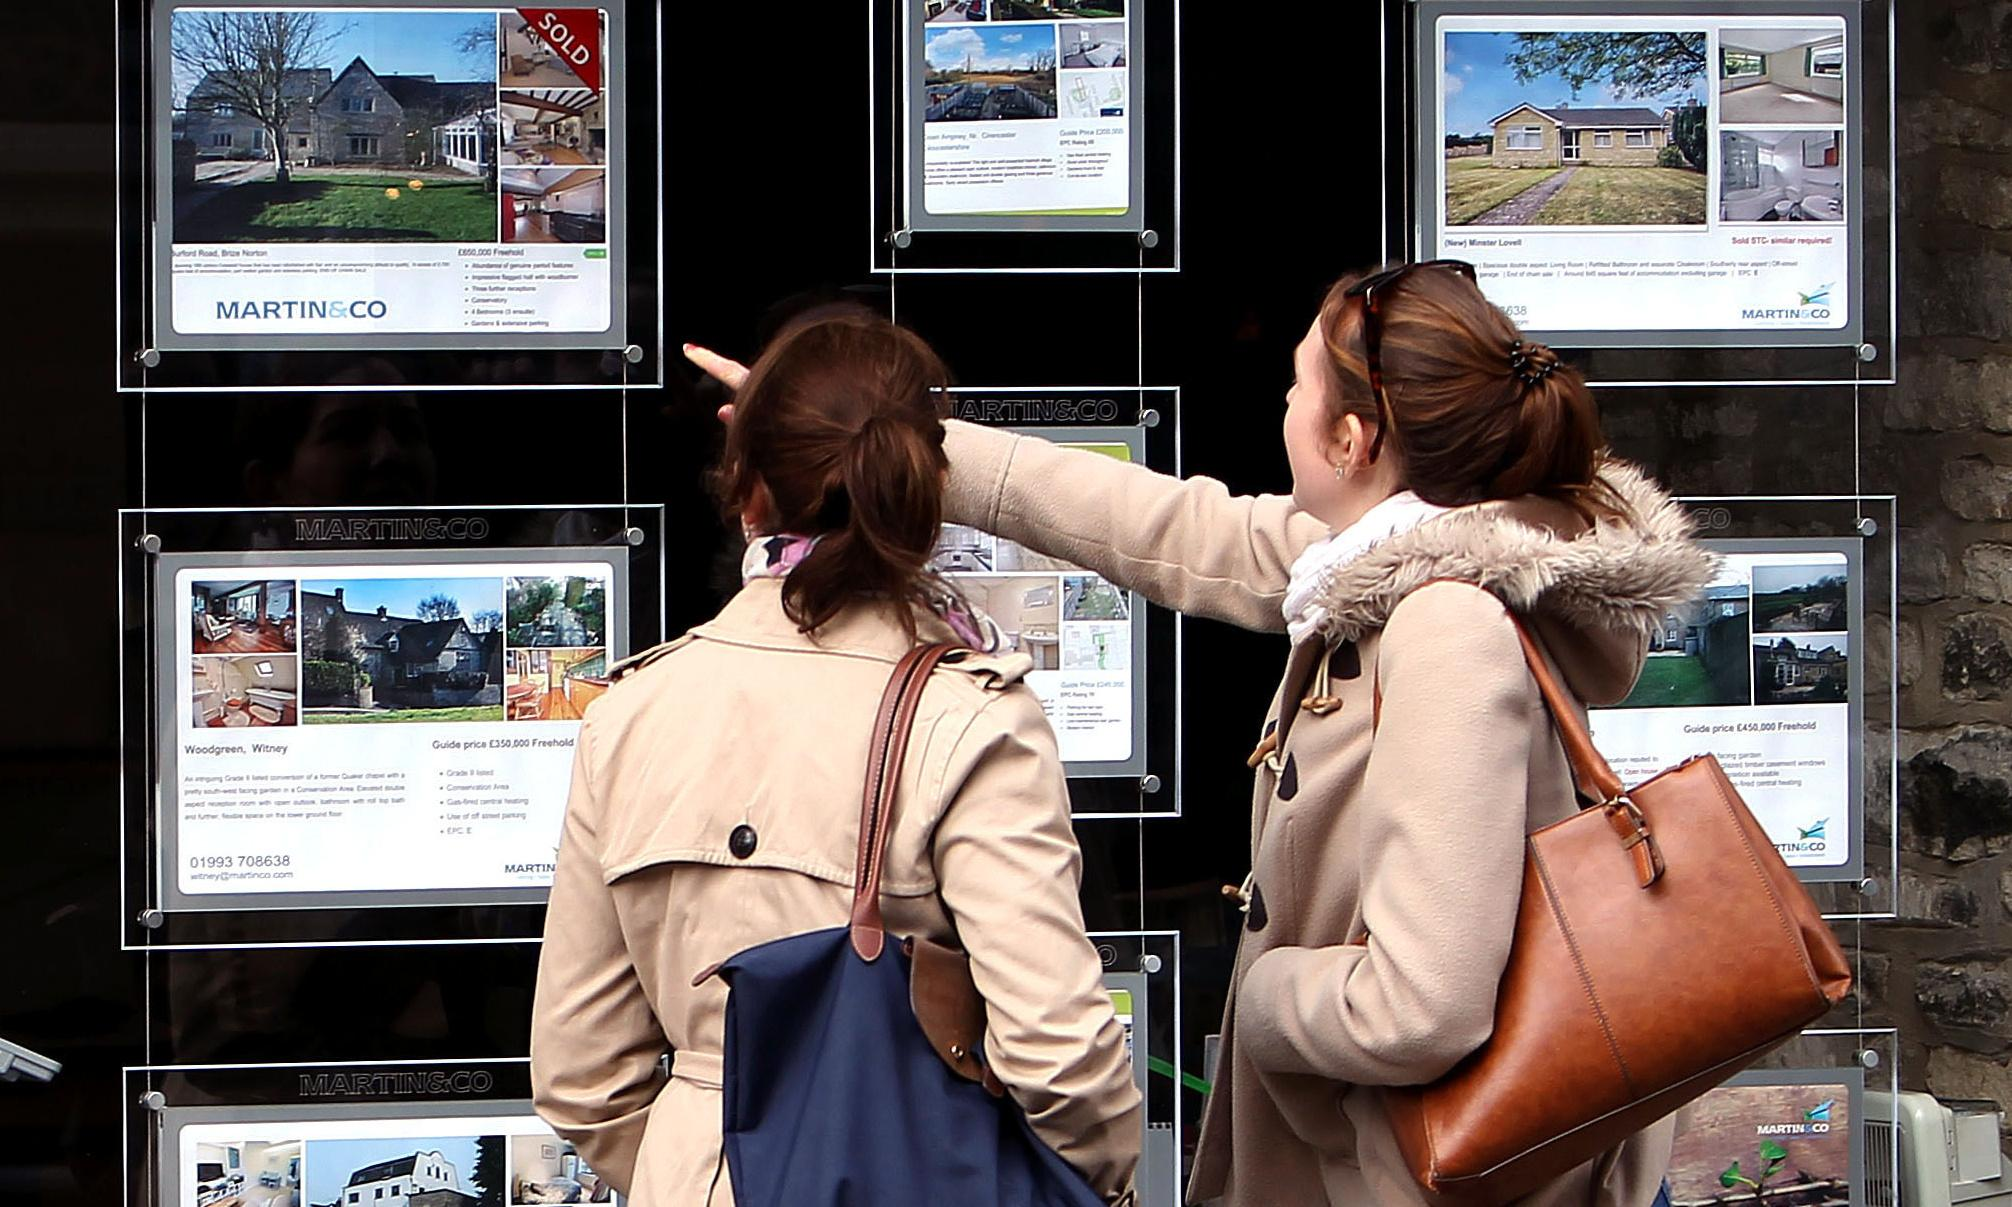 House prices fall unexpectedly as pre-Brexit caution bites